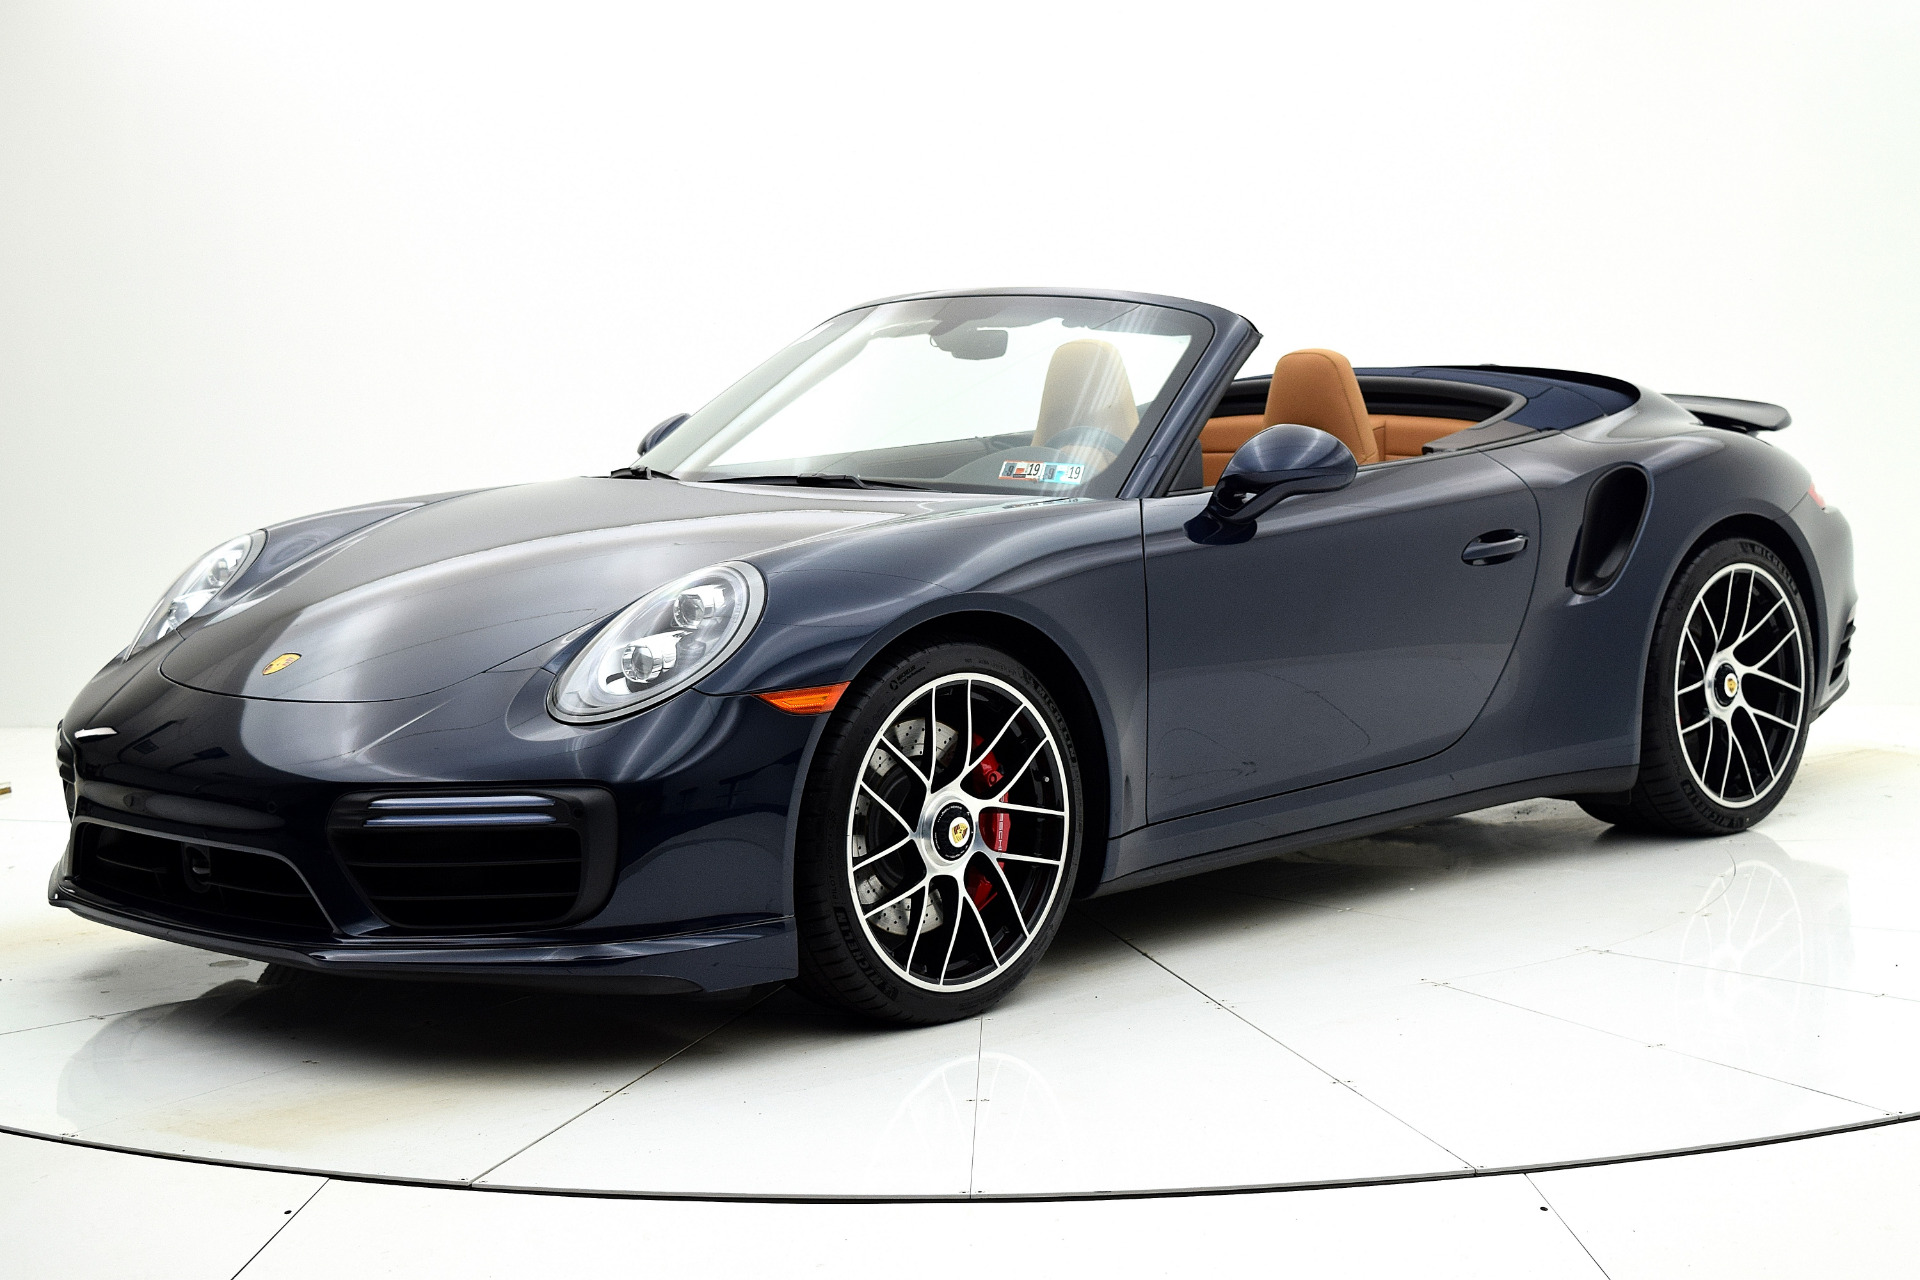 Porsche 911 2019 For Sale $172880 Stock Number 1515JIAJI